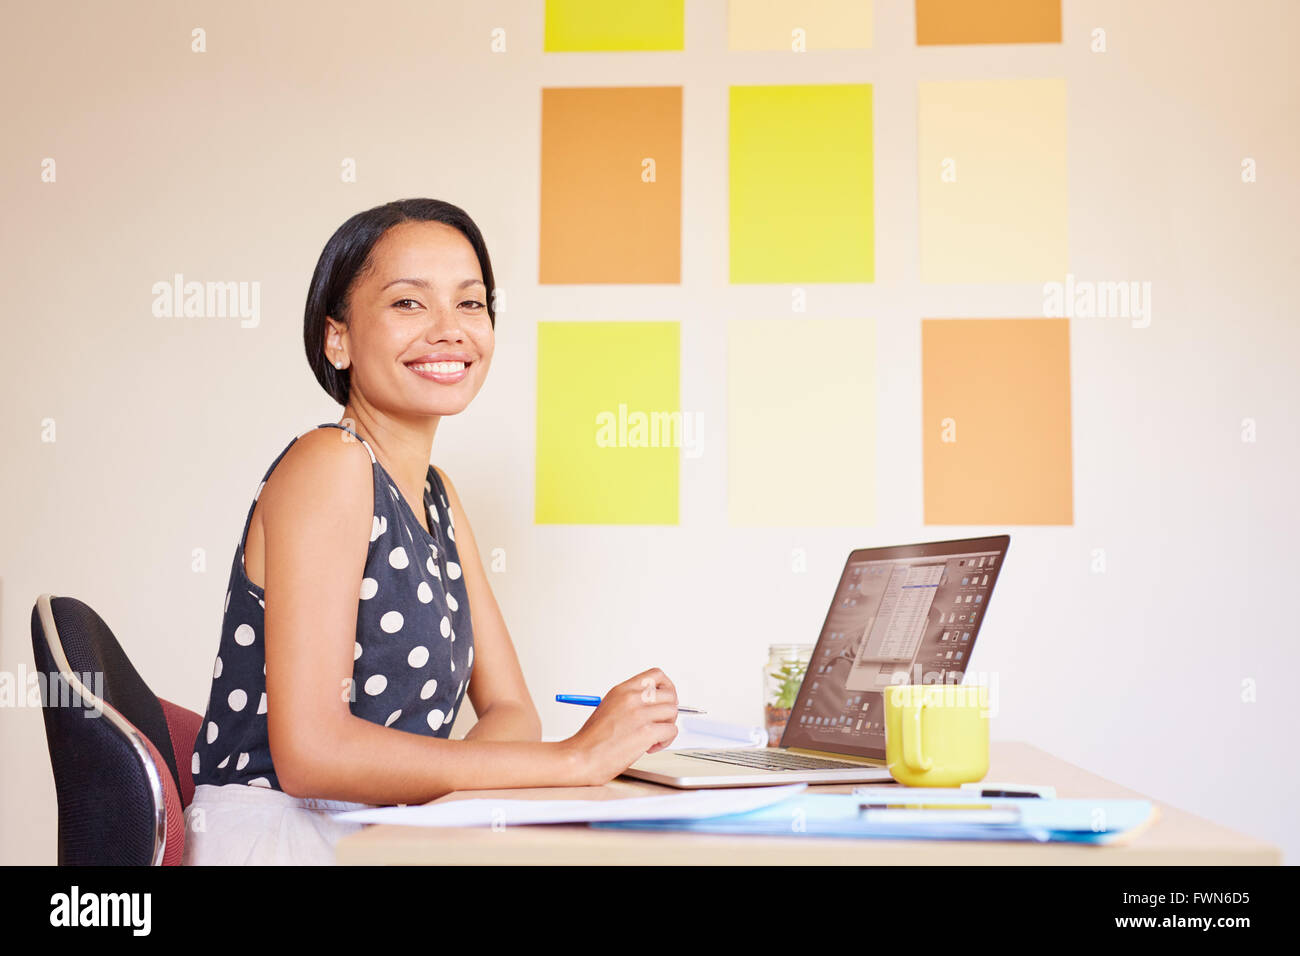 Enjoying every second at her dream job - Stock Image